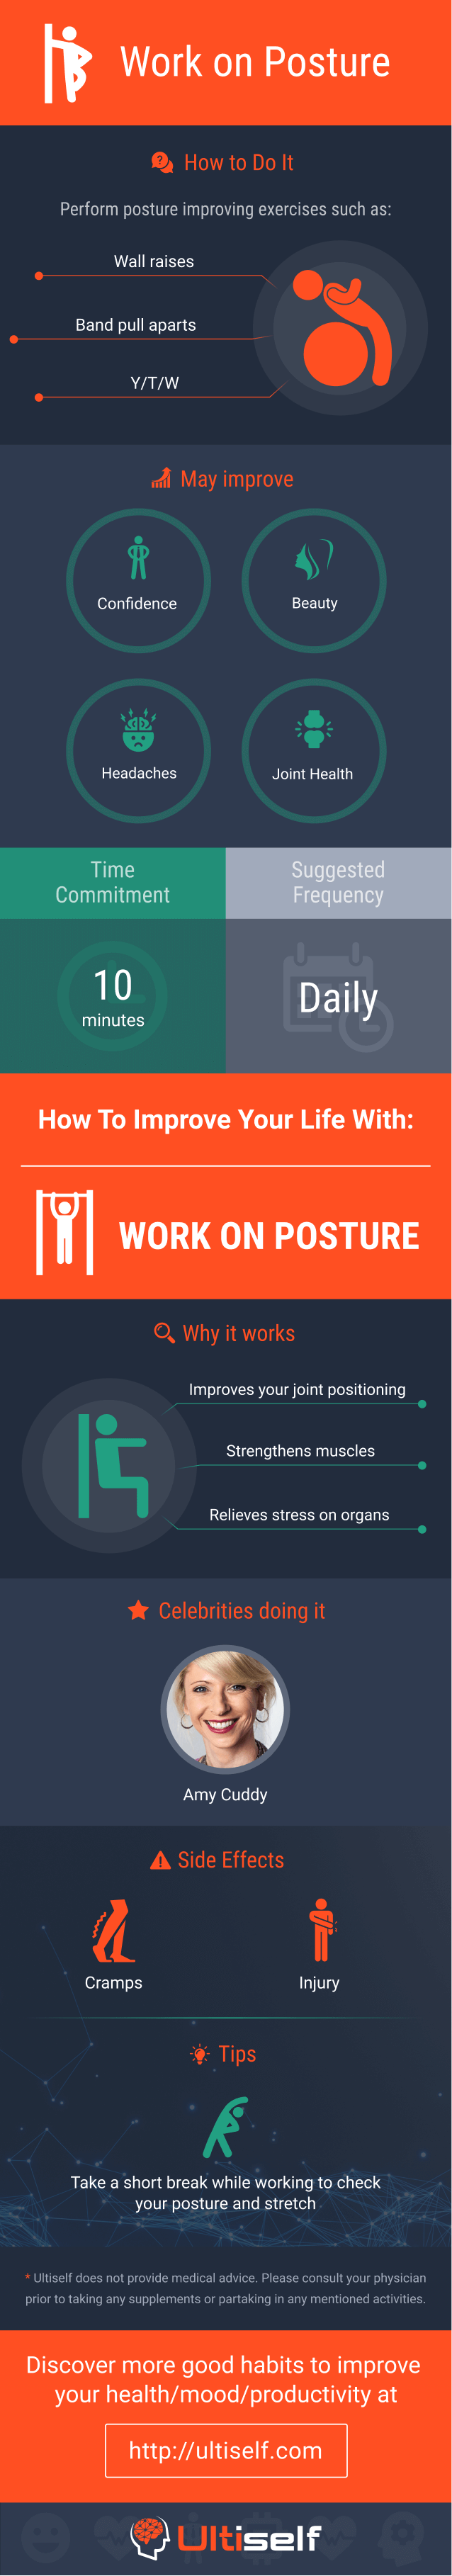 Work on Posture infographic